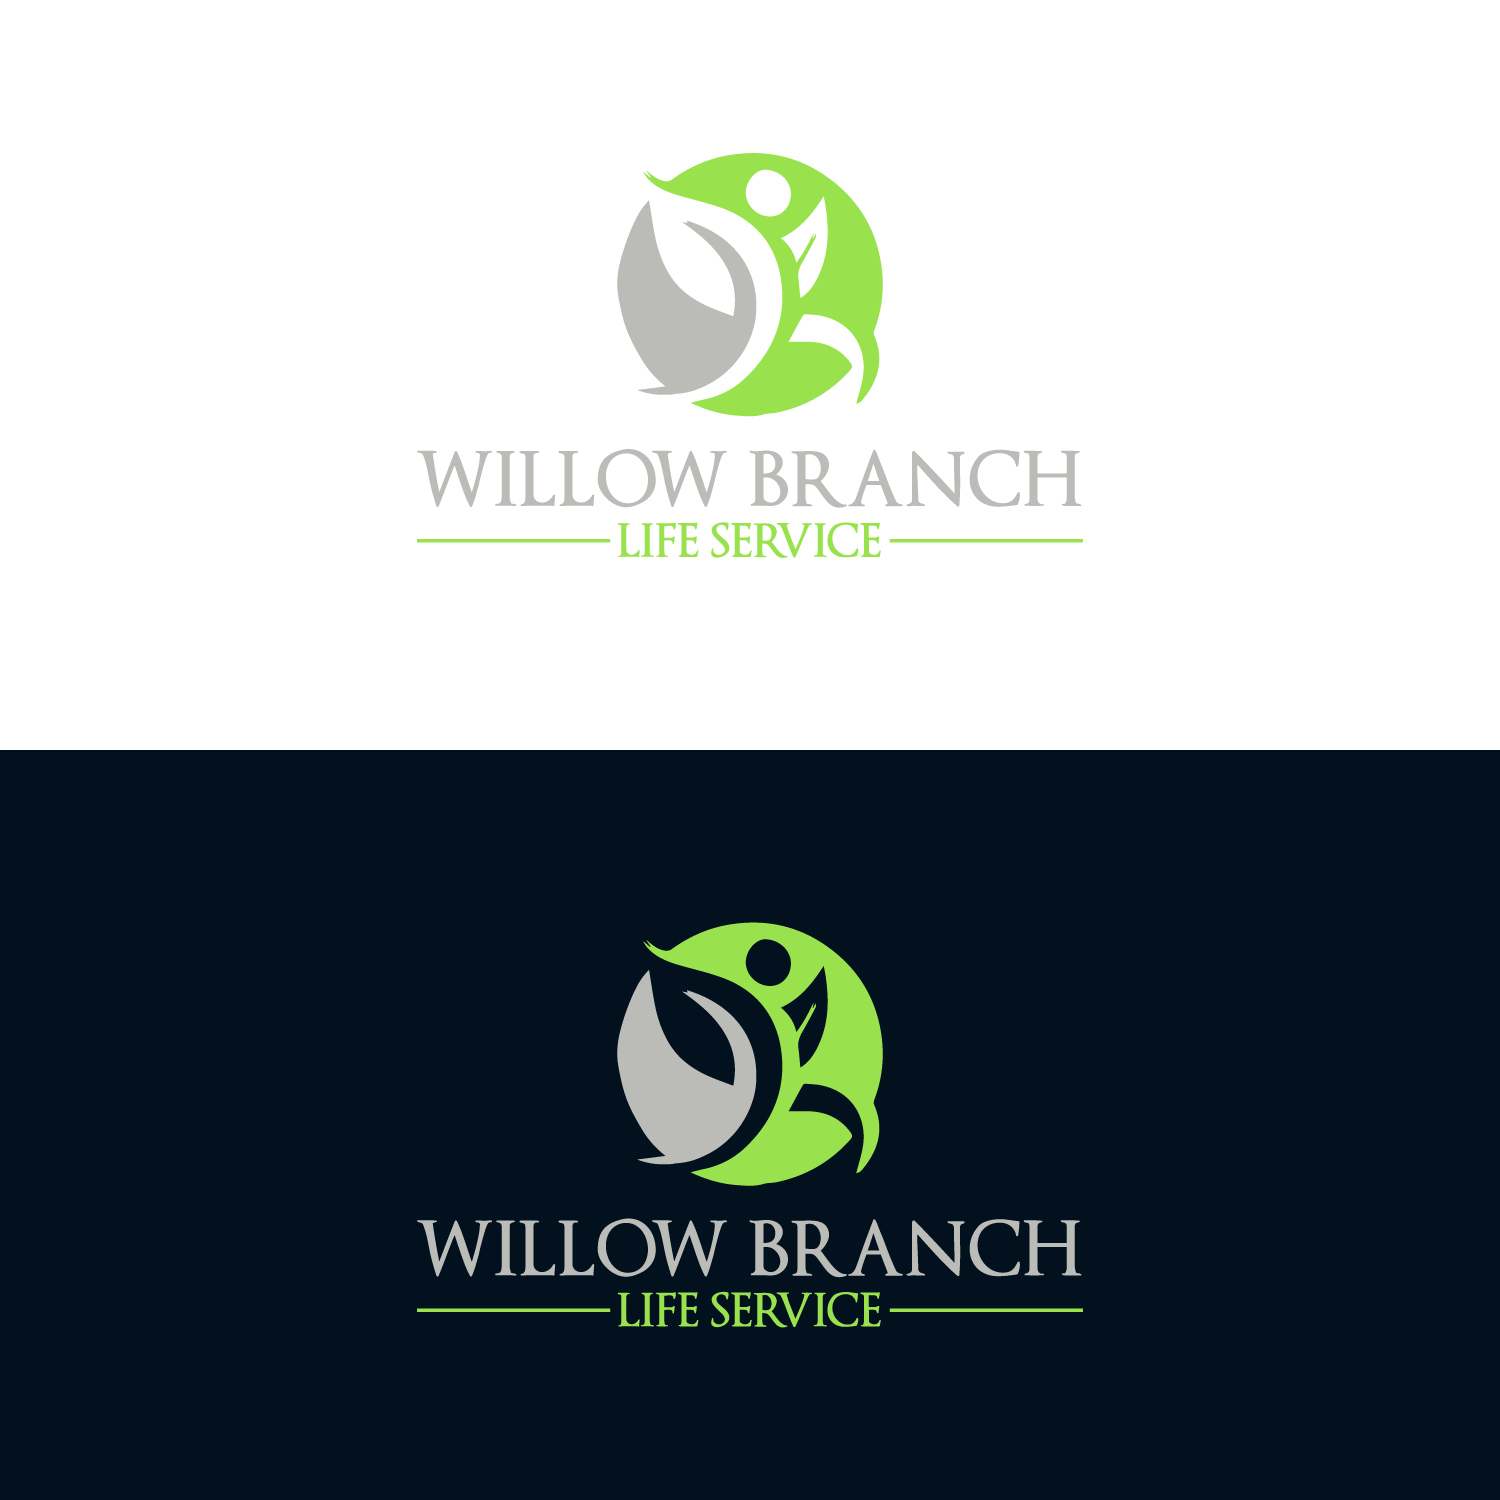 Logo Design by Badal Hossain - Entry No. 268 in the Logo Design Contest Artistic Logo Design for Willow Branch Life Service.